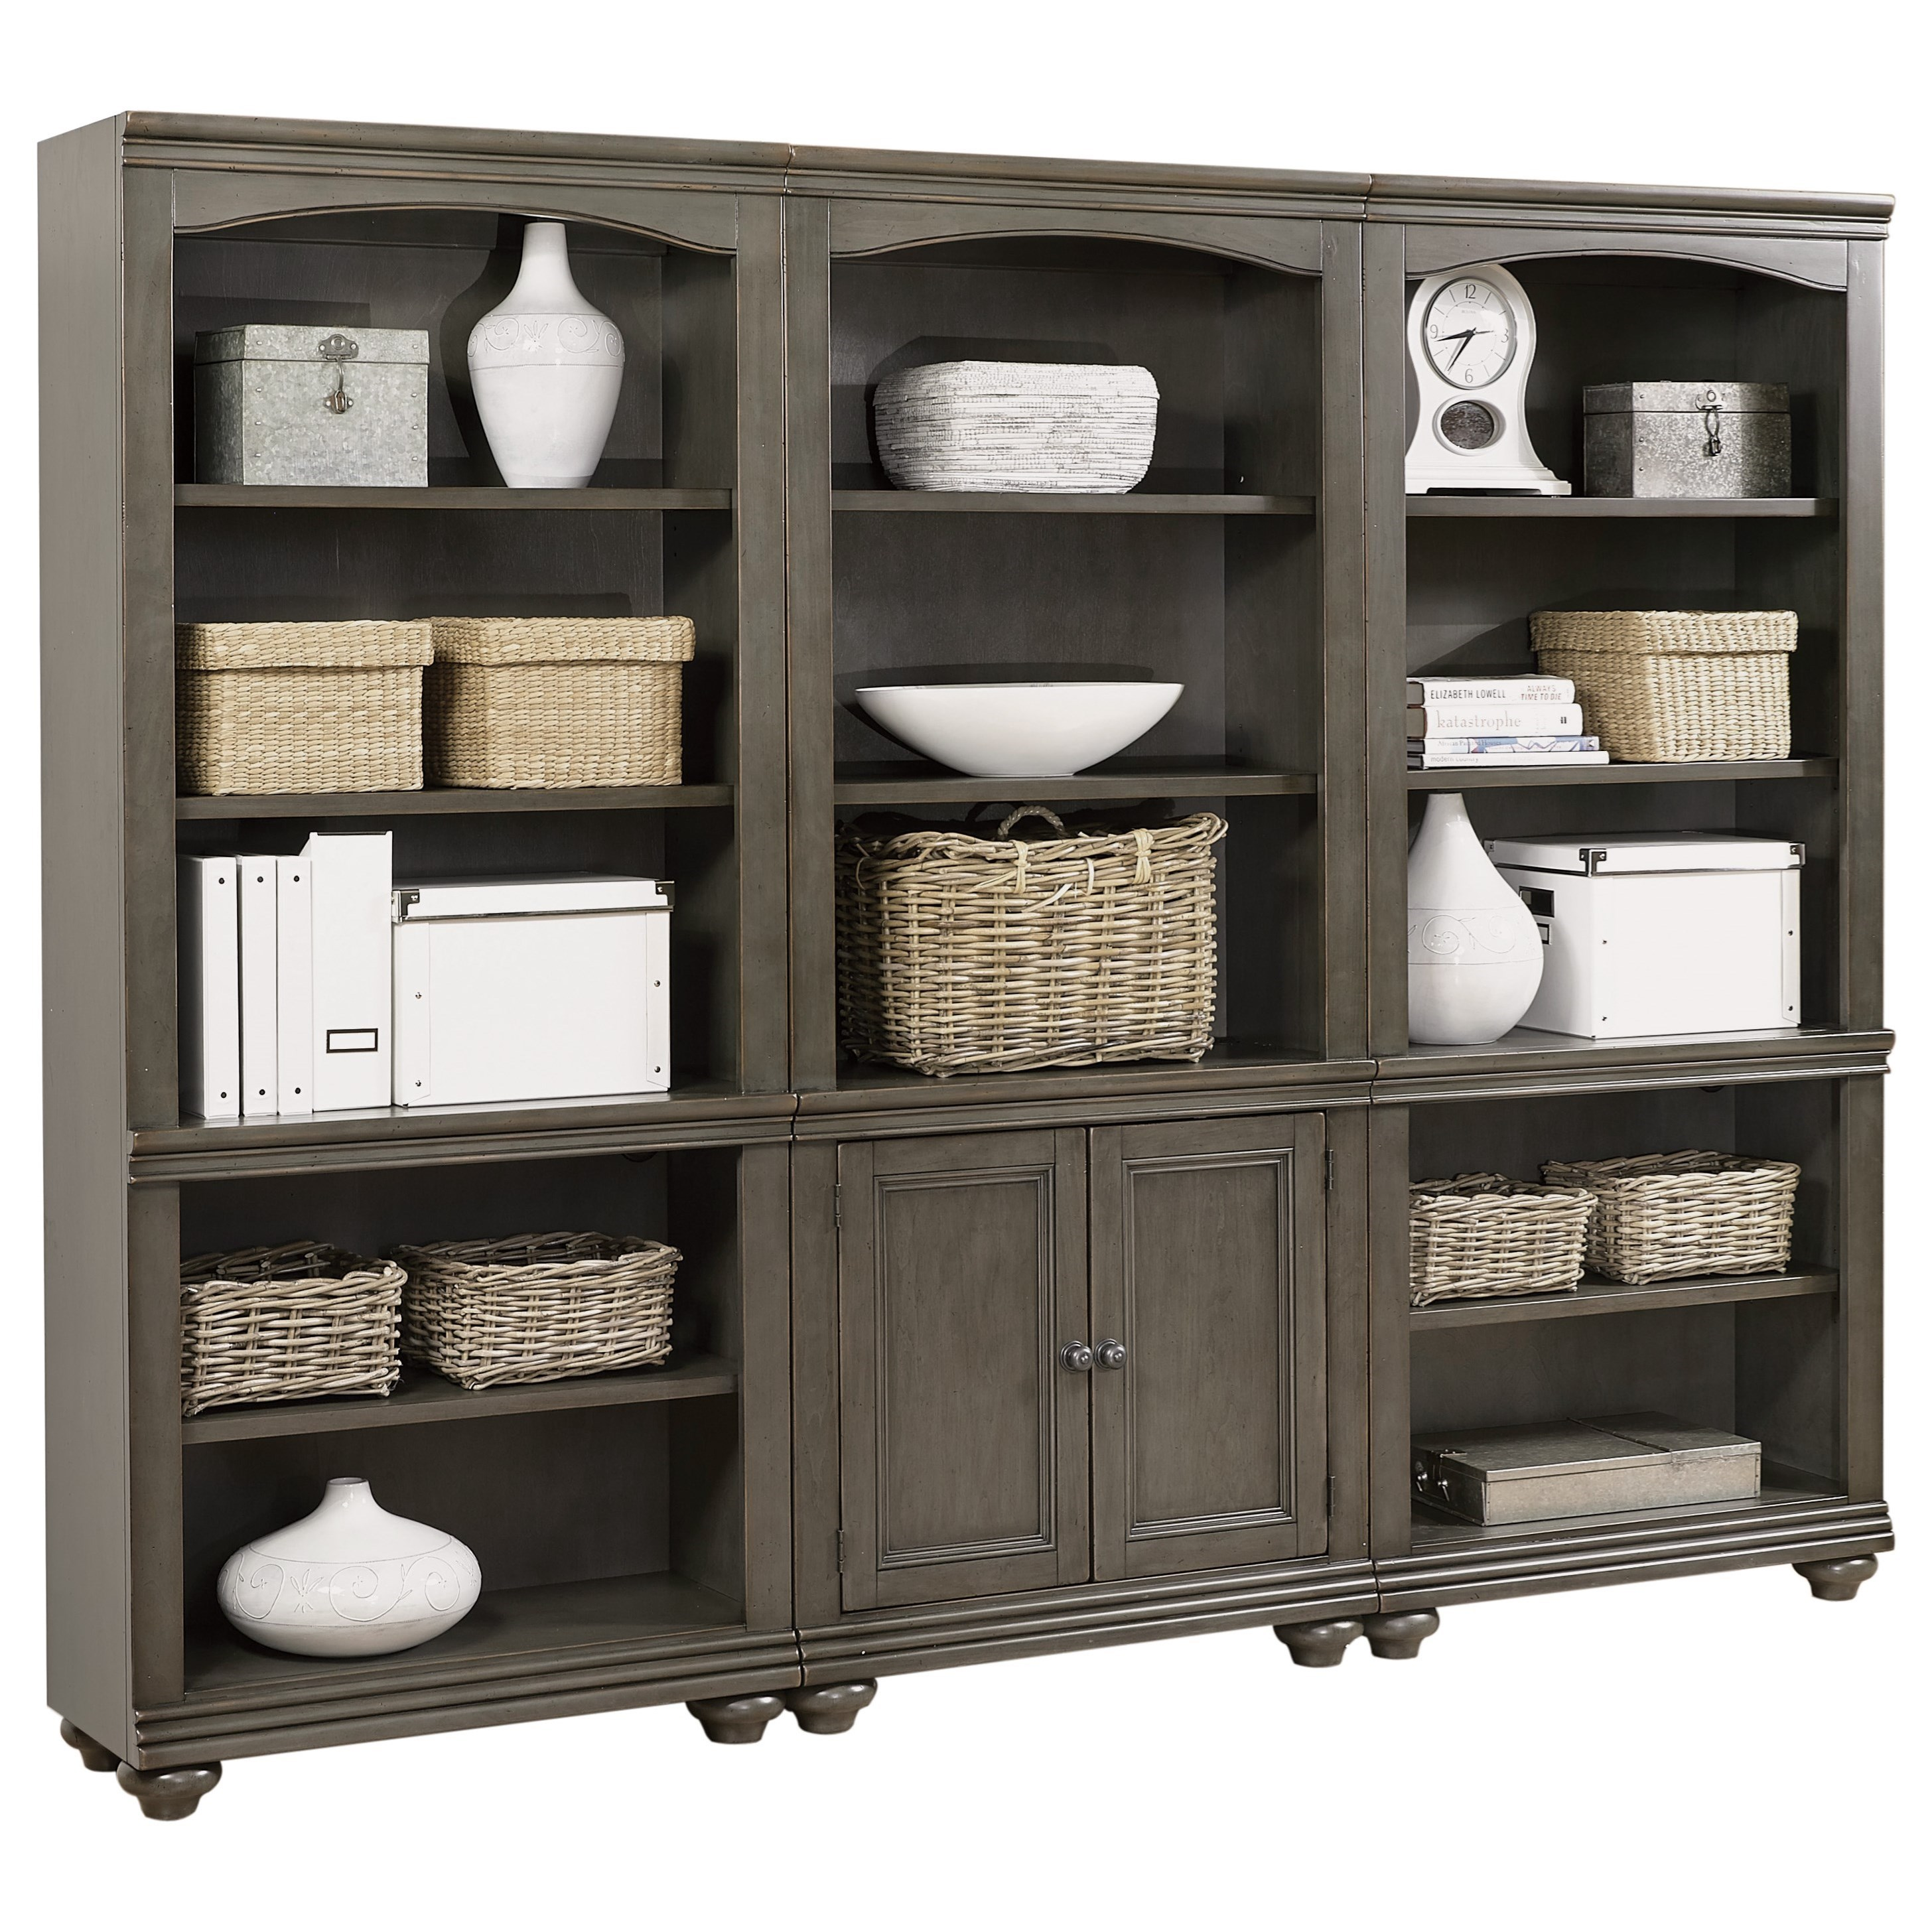 Oxford Bookcase Wall by Aspenhome at Baer's Furniture